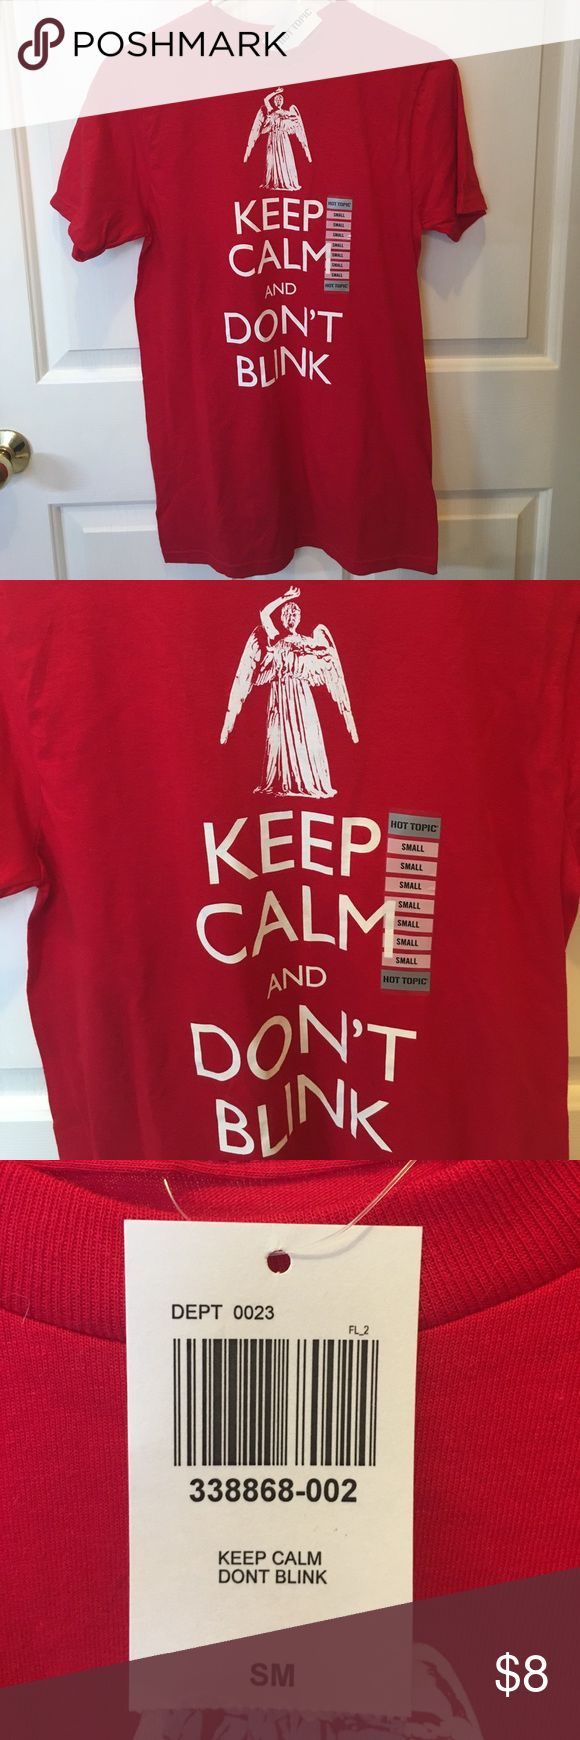 NWT Dr Who t shirt Brand new with tags Dr. Who t shirt size small. Smoke free home. Consider bundling with other items in my closet for a 15% discount! 😊 Hot Topic Tops Tees - Short Sleeve